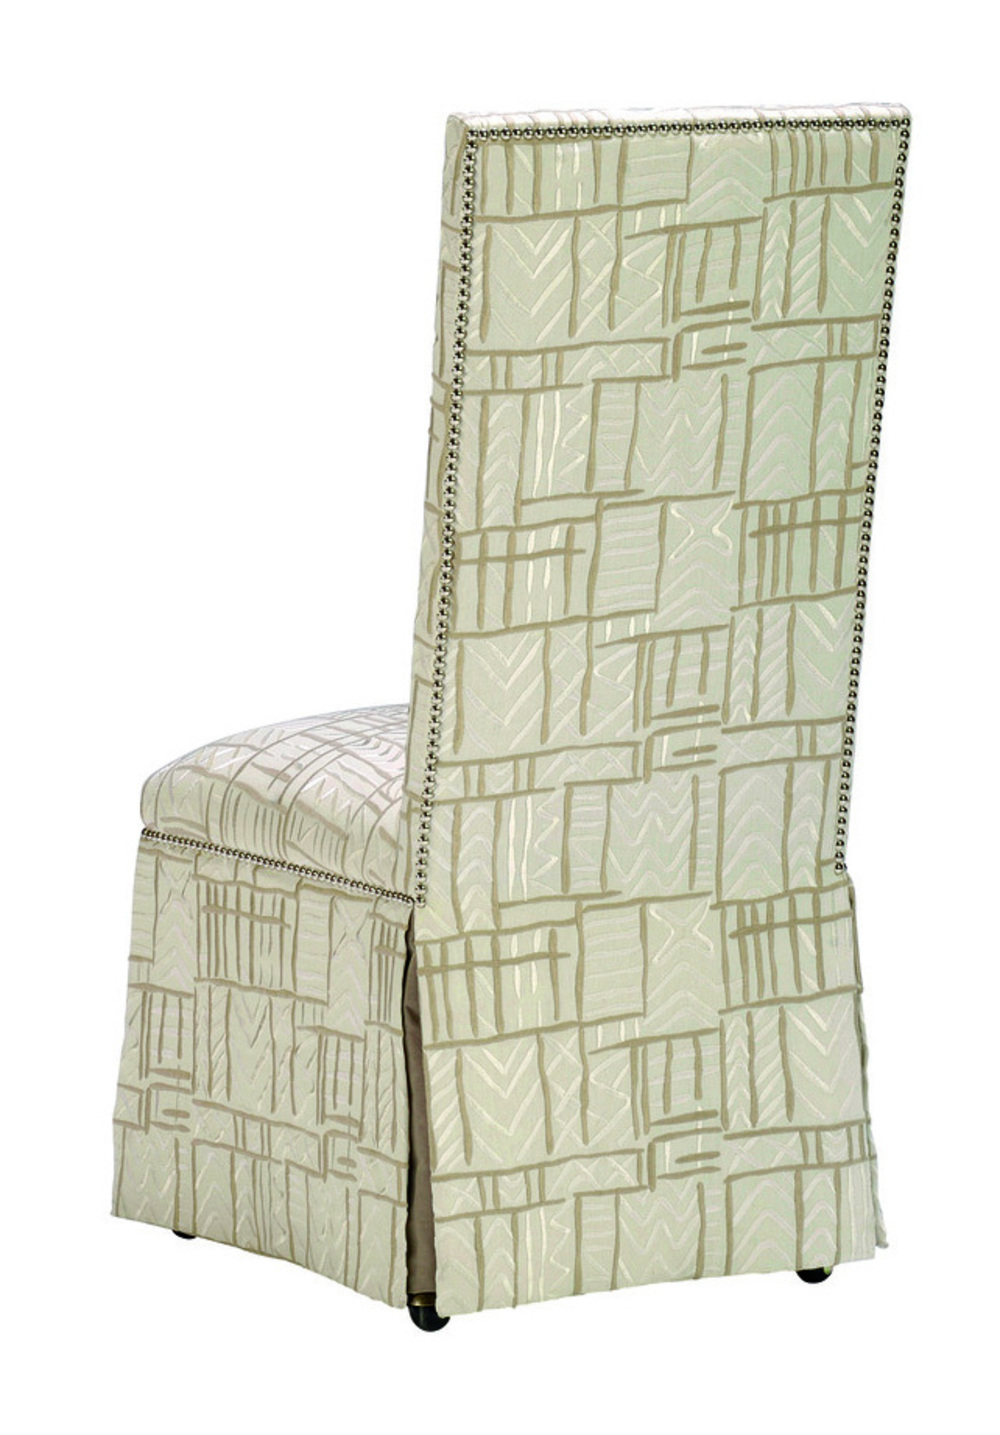 Marge Carson - Sinatra Side Chair